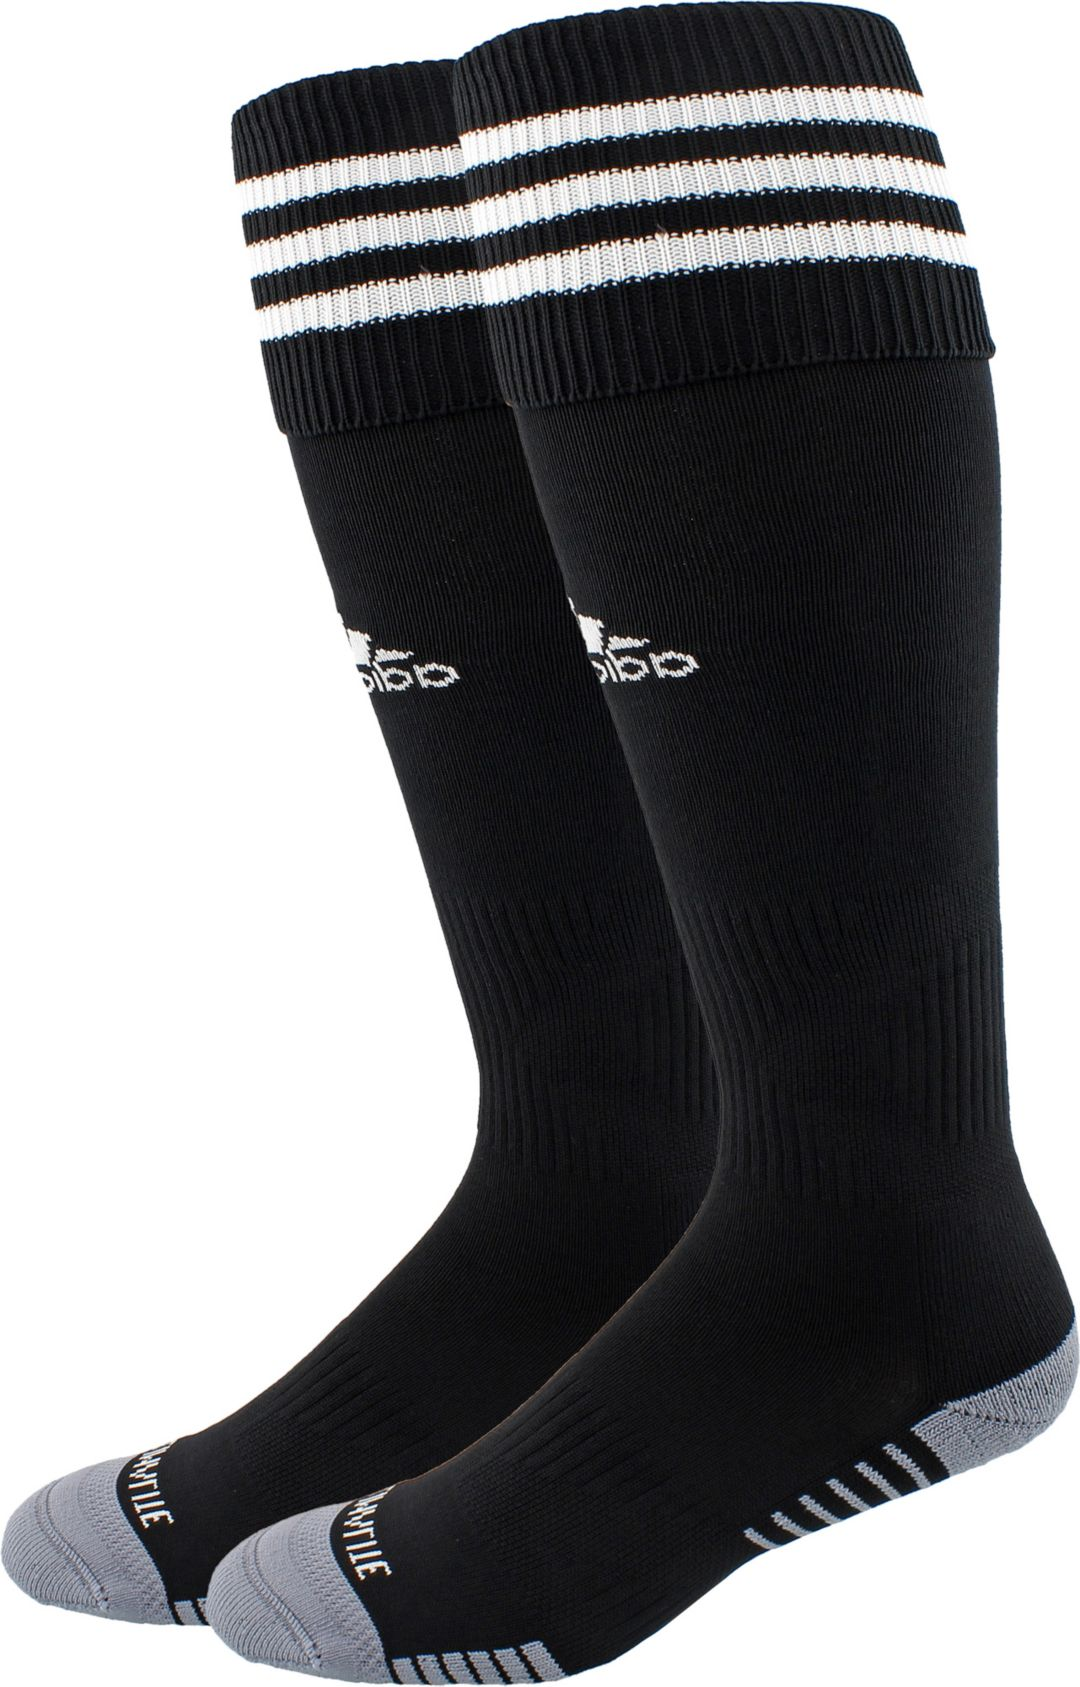 f8aed2bb3b45 adidas Copa Zone Cushion III Soccer Socks